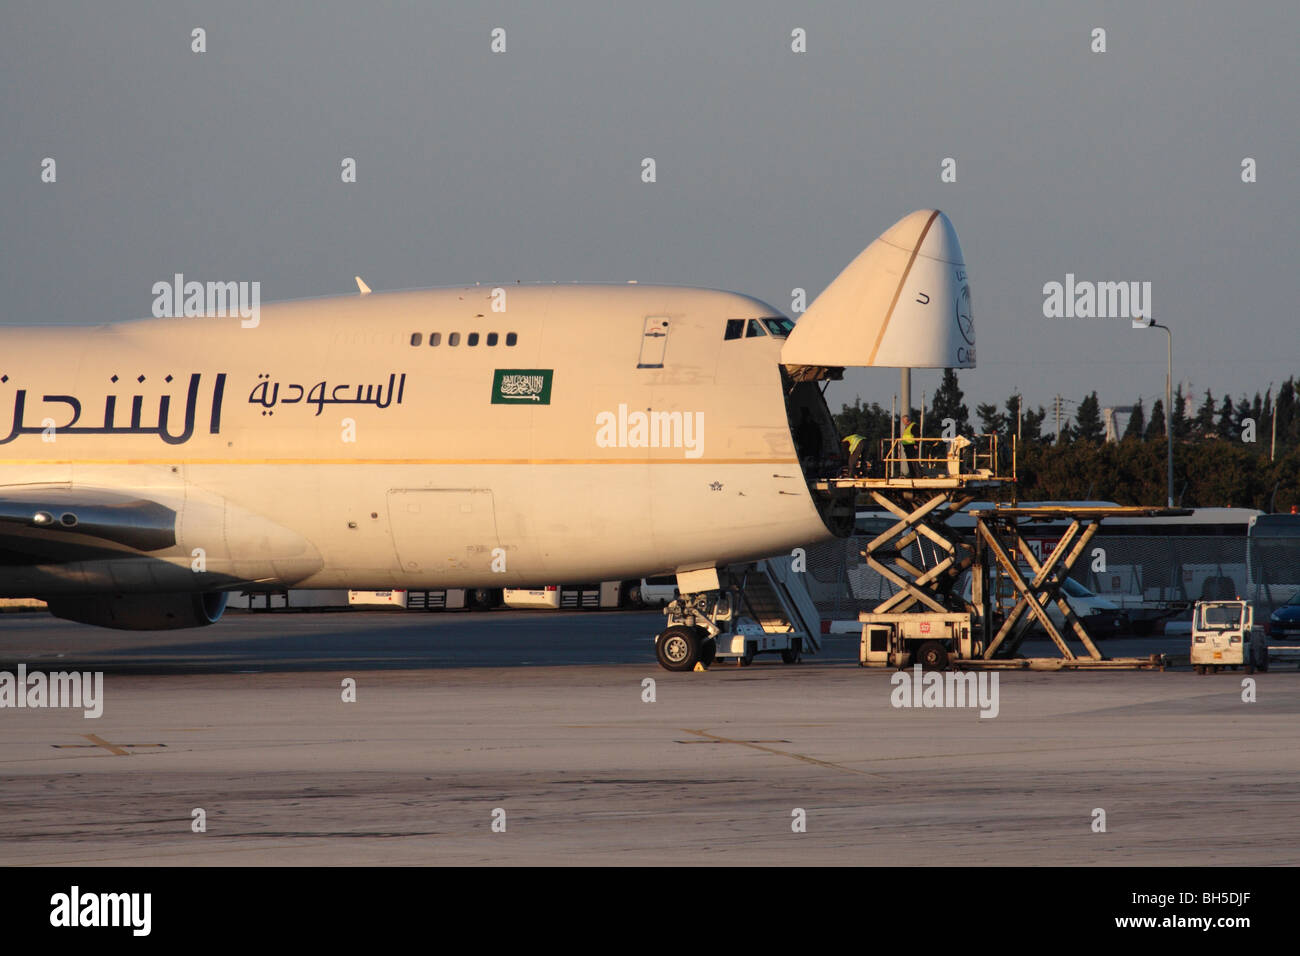 Saudi Arabian Cargo Boeing 747-200F jumbo jet transport plane with nose open ready for unloading - Stock Image